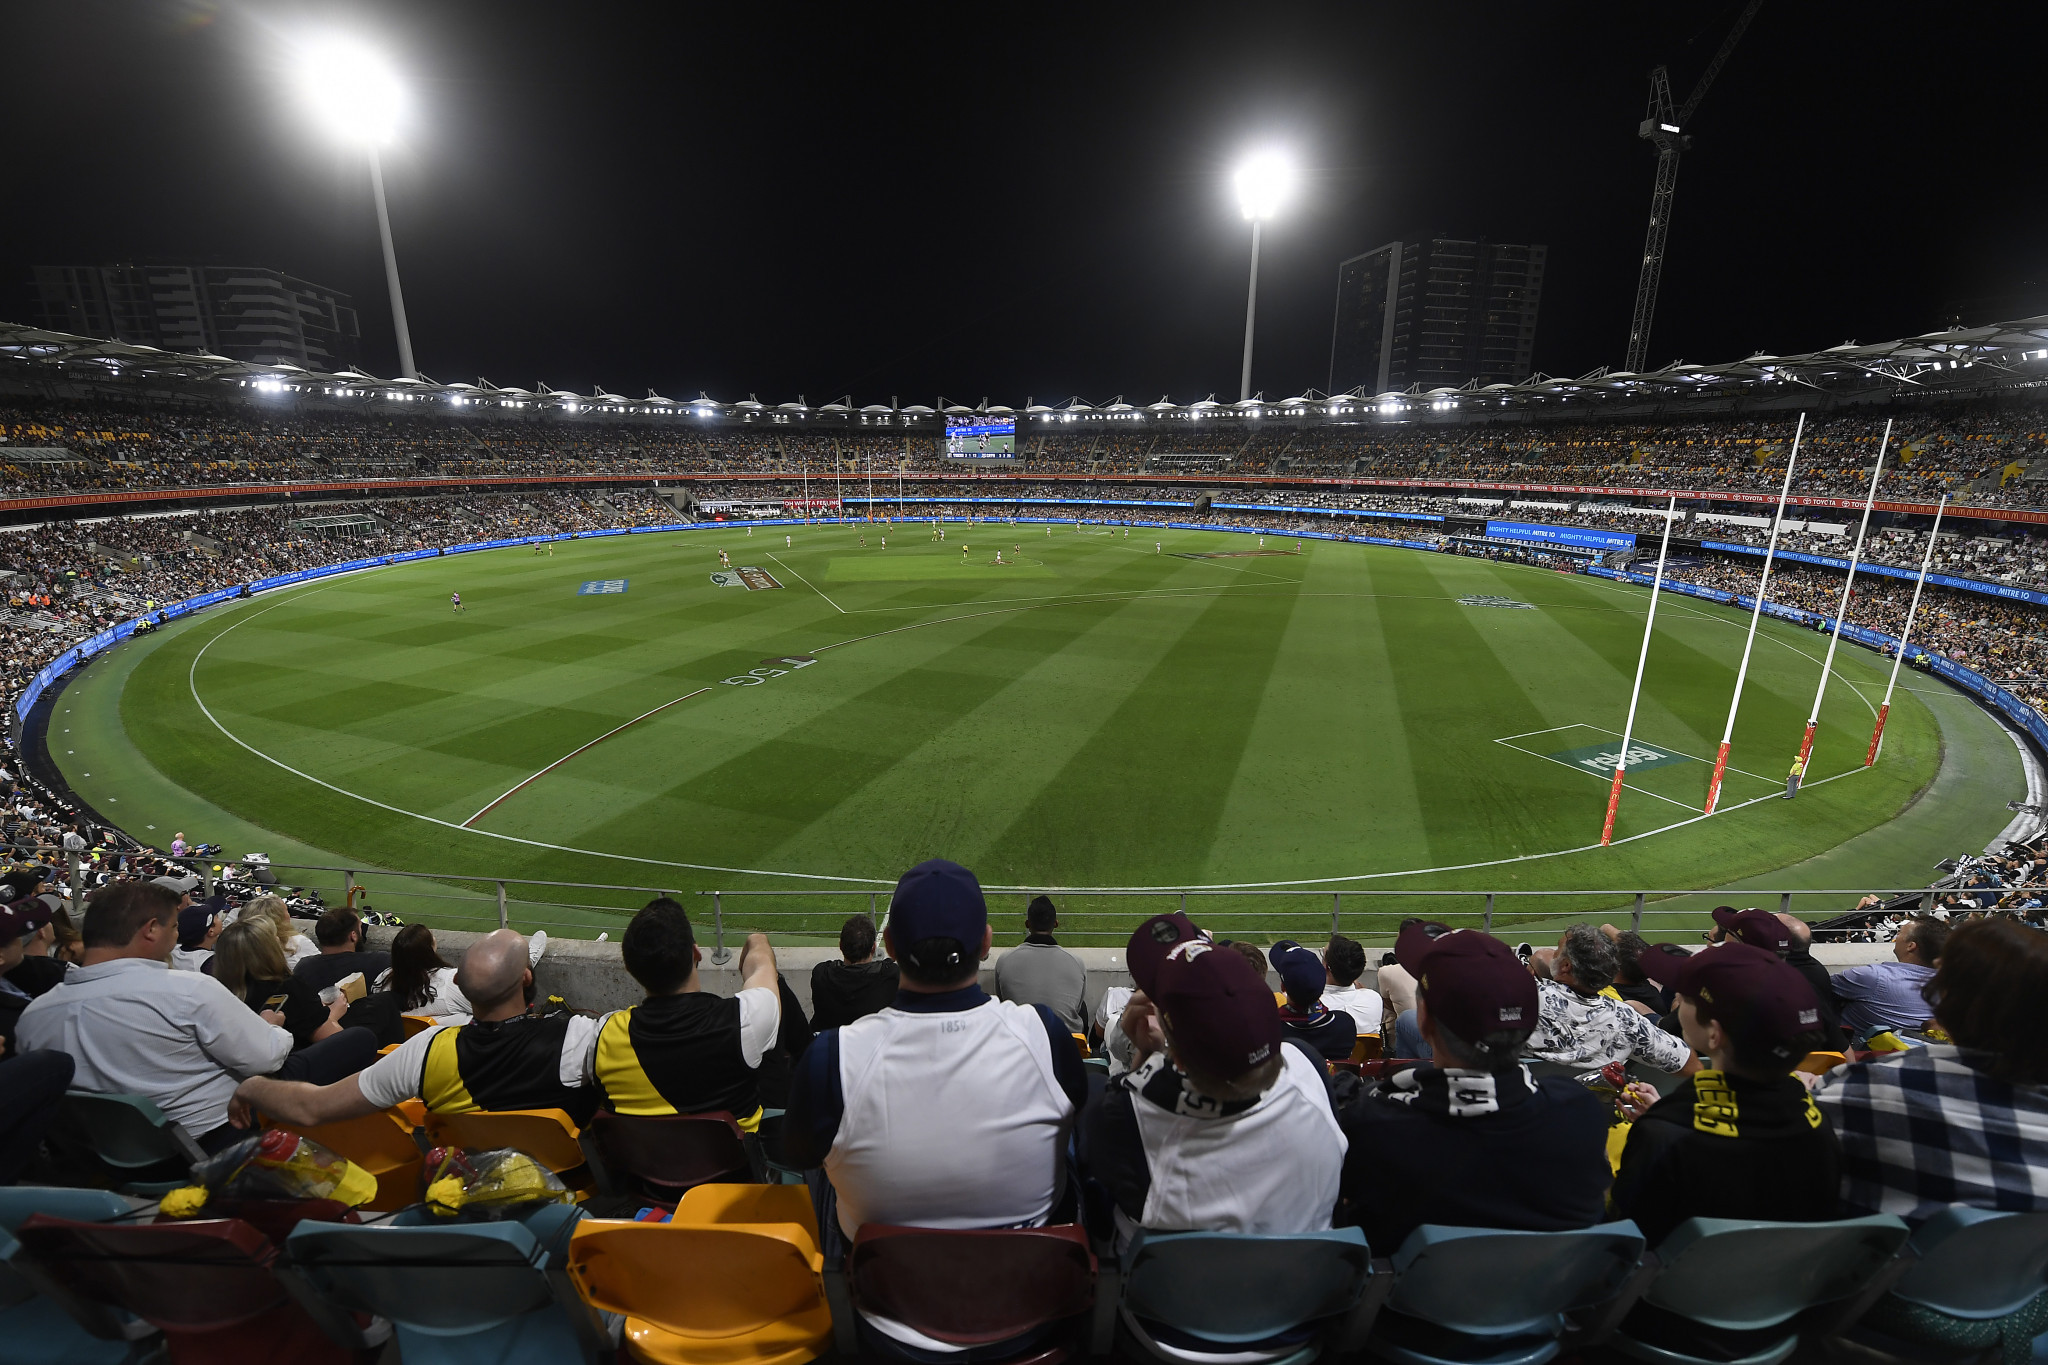 The Gabba is known for sports including cricket, rugby and AFL football ©Getty Images